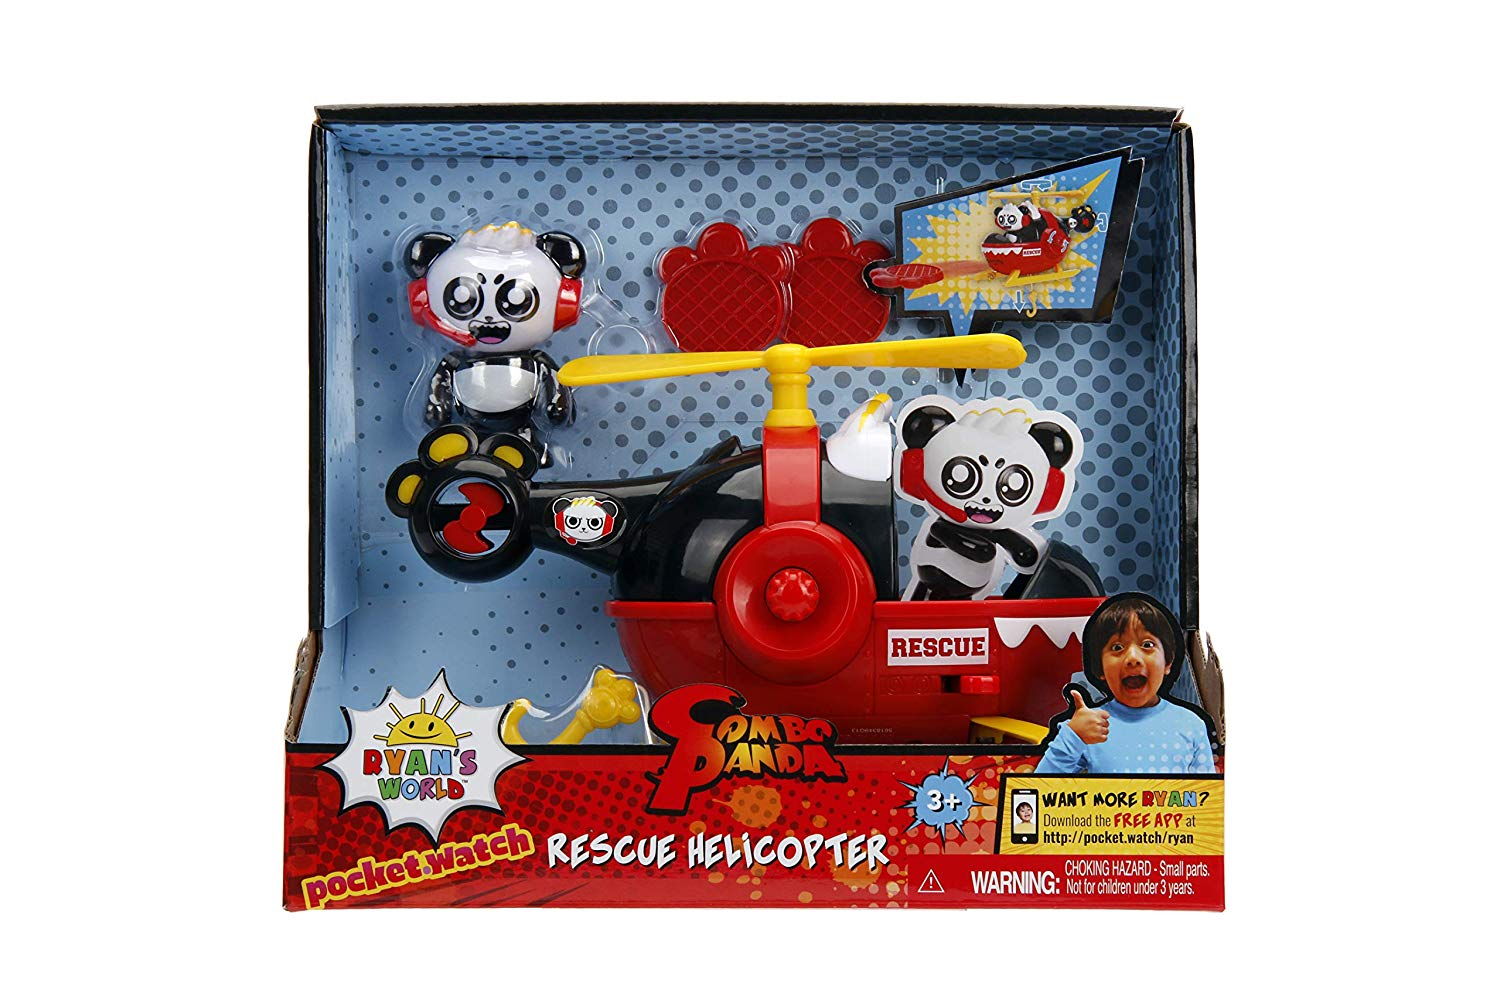 Ryan's World Combo Panda Rescue Helicopter Play Set